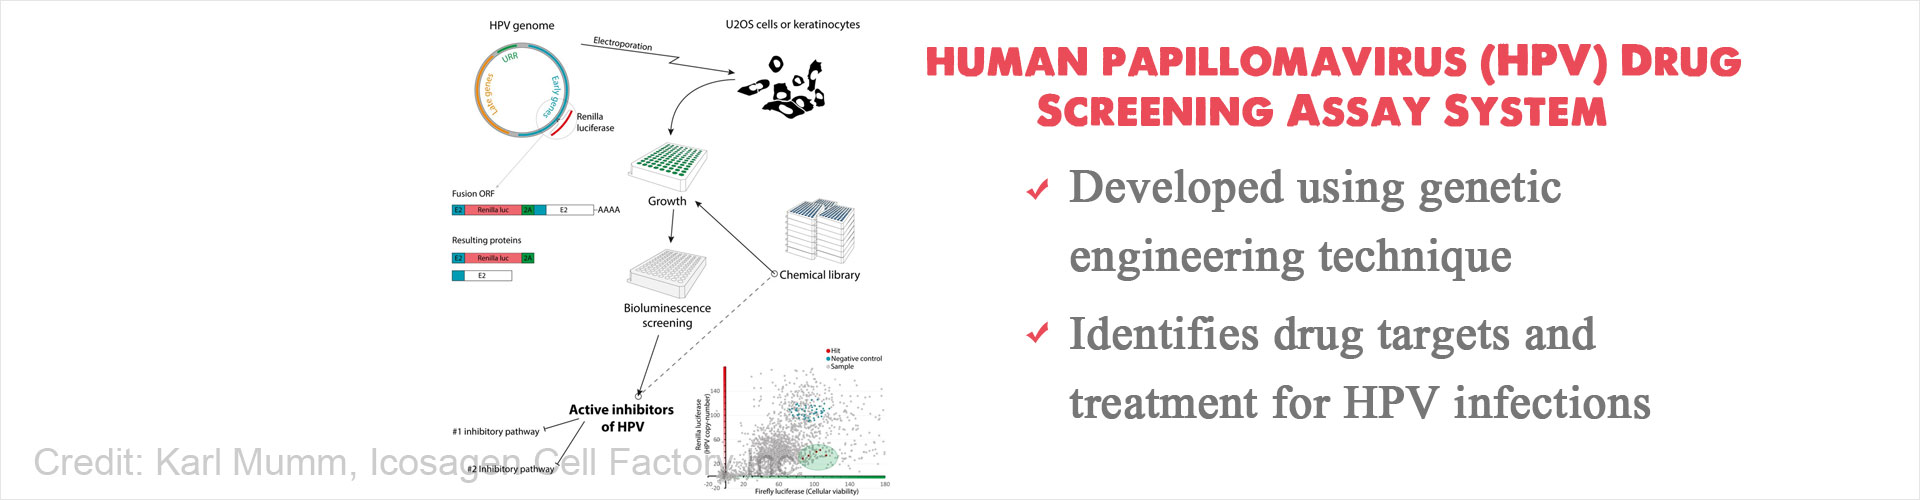 New Screening System to Identify Potential Drug Targets and Treatment for Human Papillomavirus (HPV)